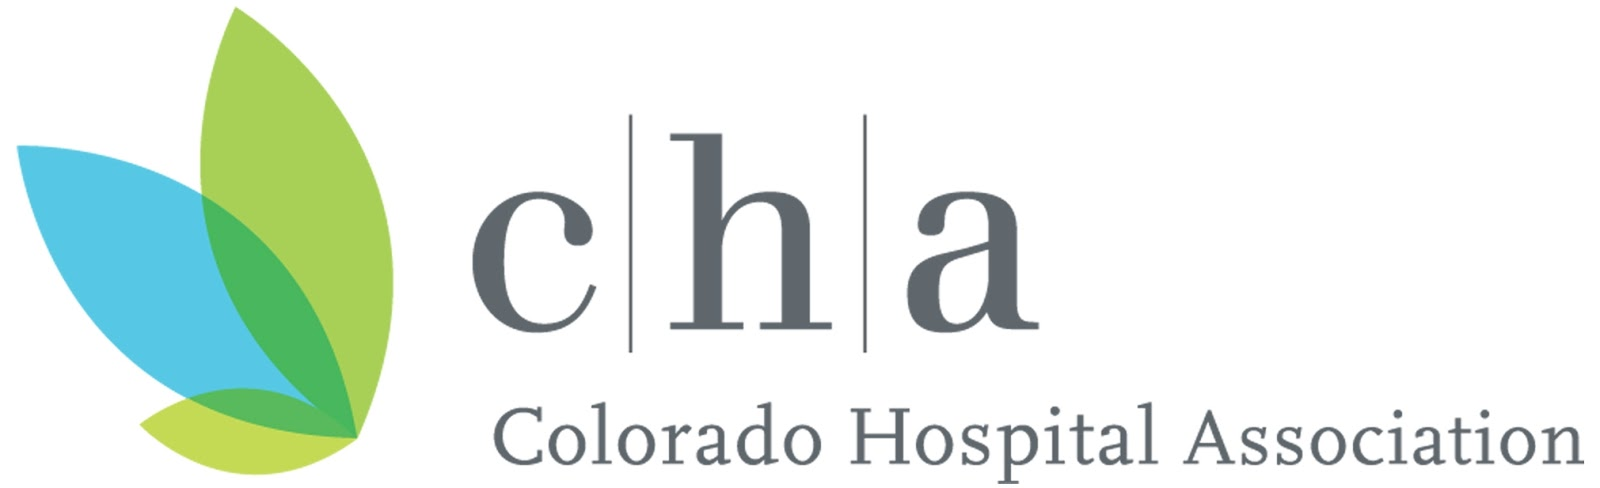 Colorado Hospital Association (CHA) Annual Meeting 2018 Banner Image